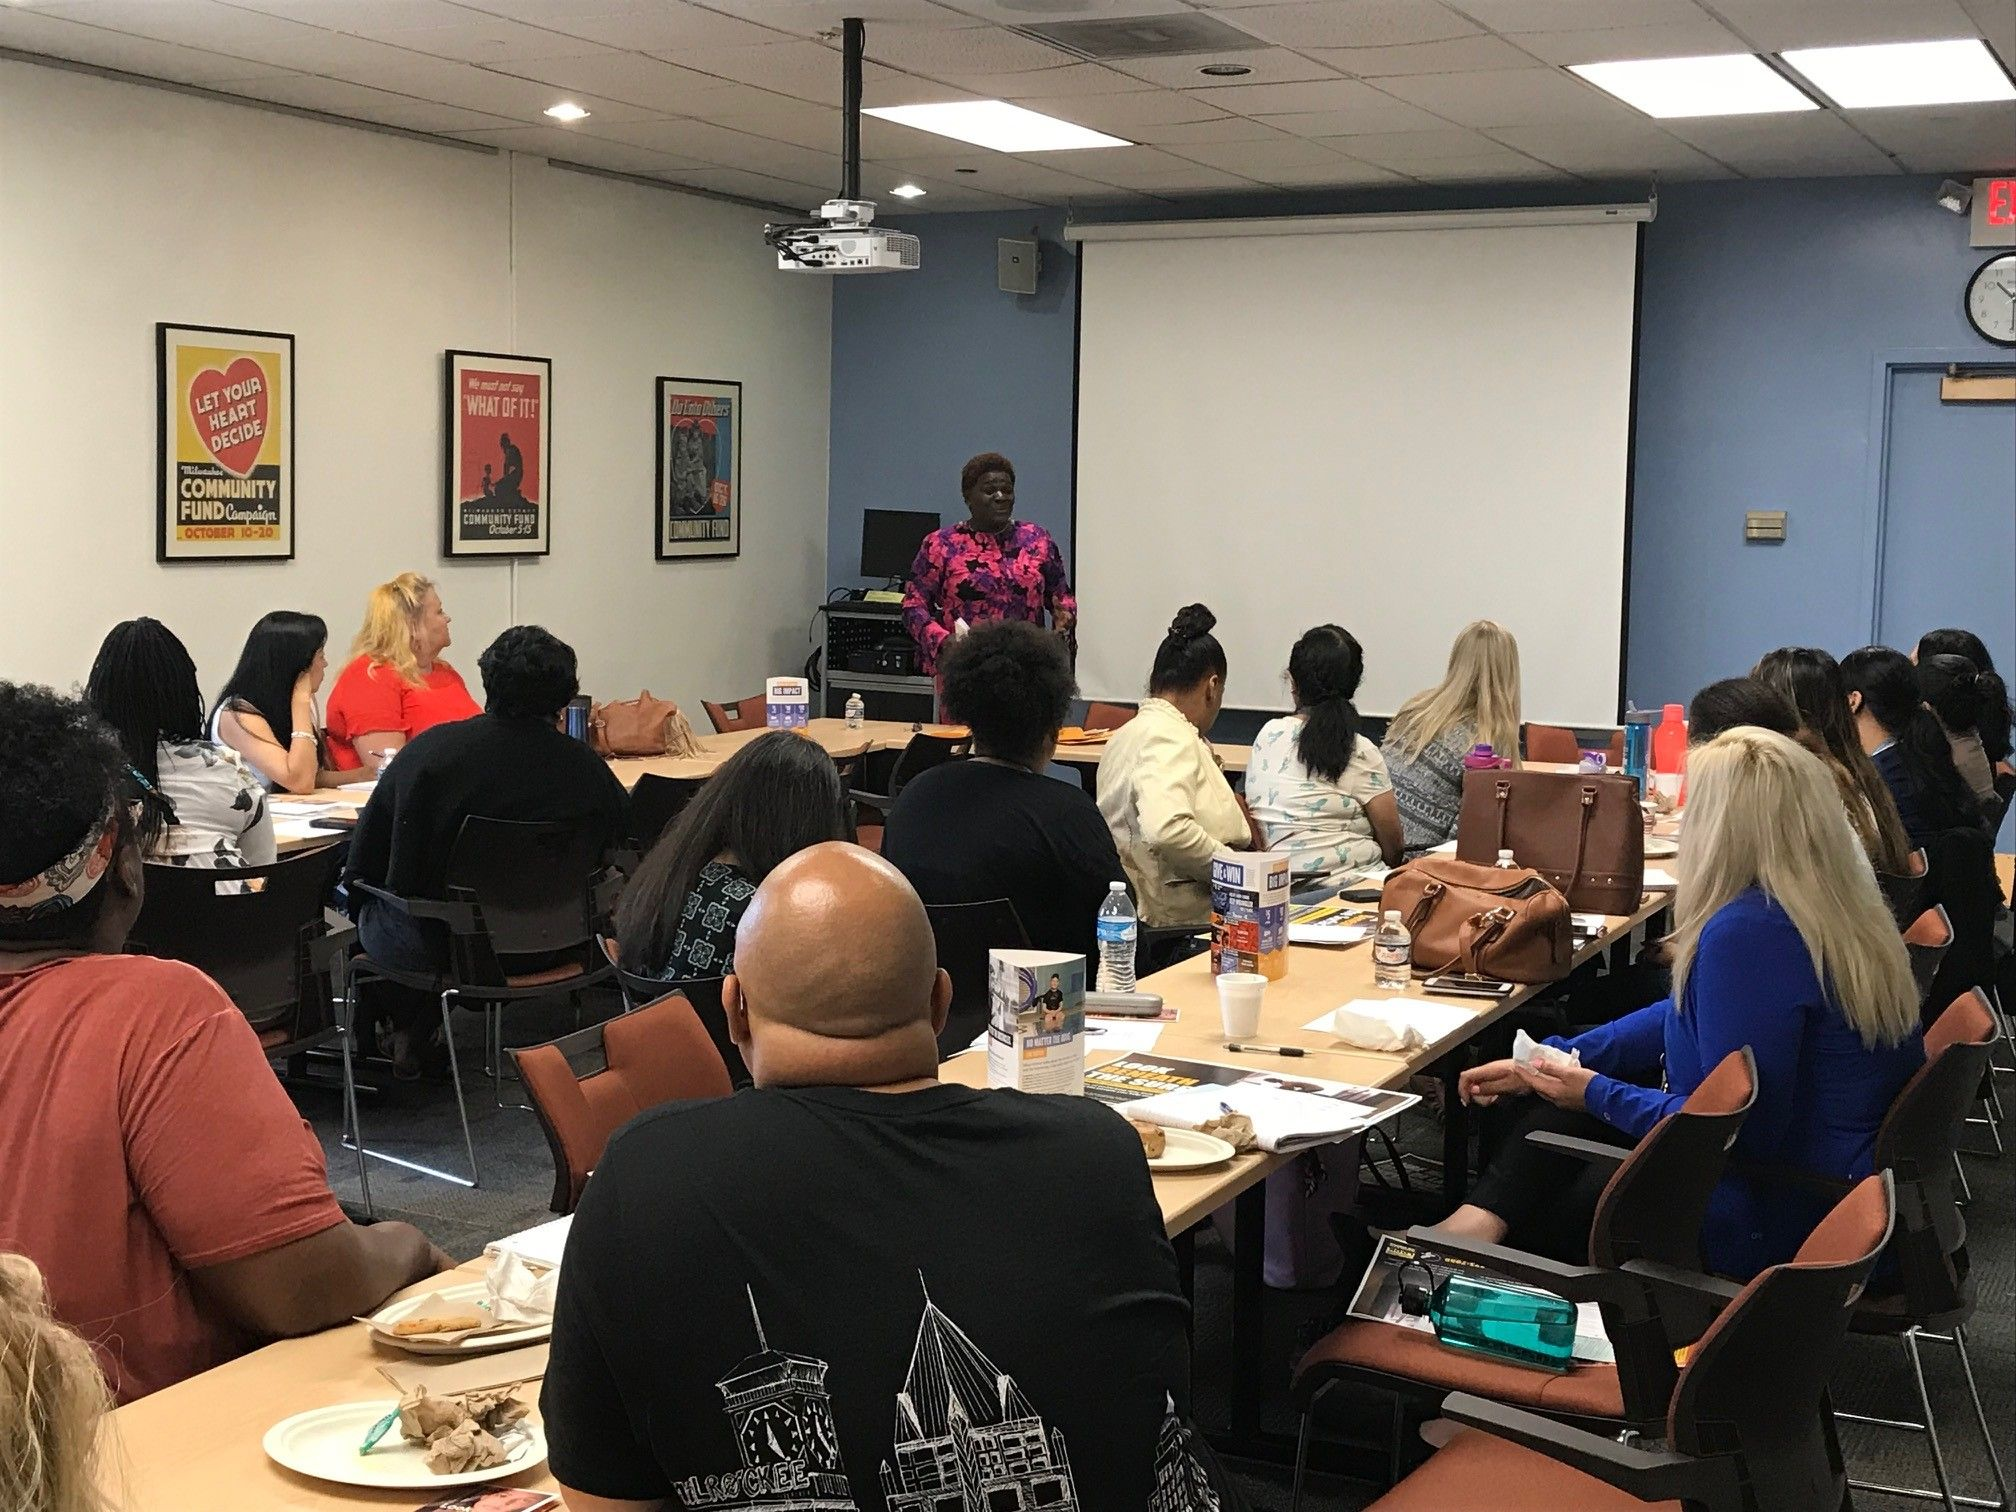 ECOM Meeting Shines a Light on Human Trafficking in Milwaukee